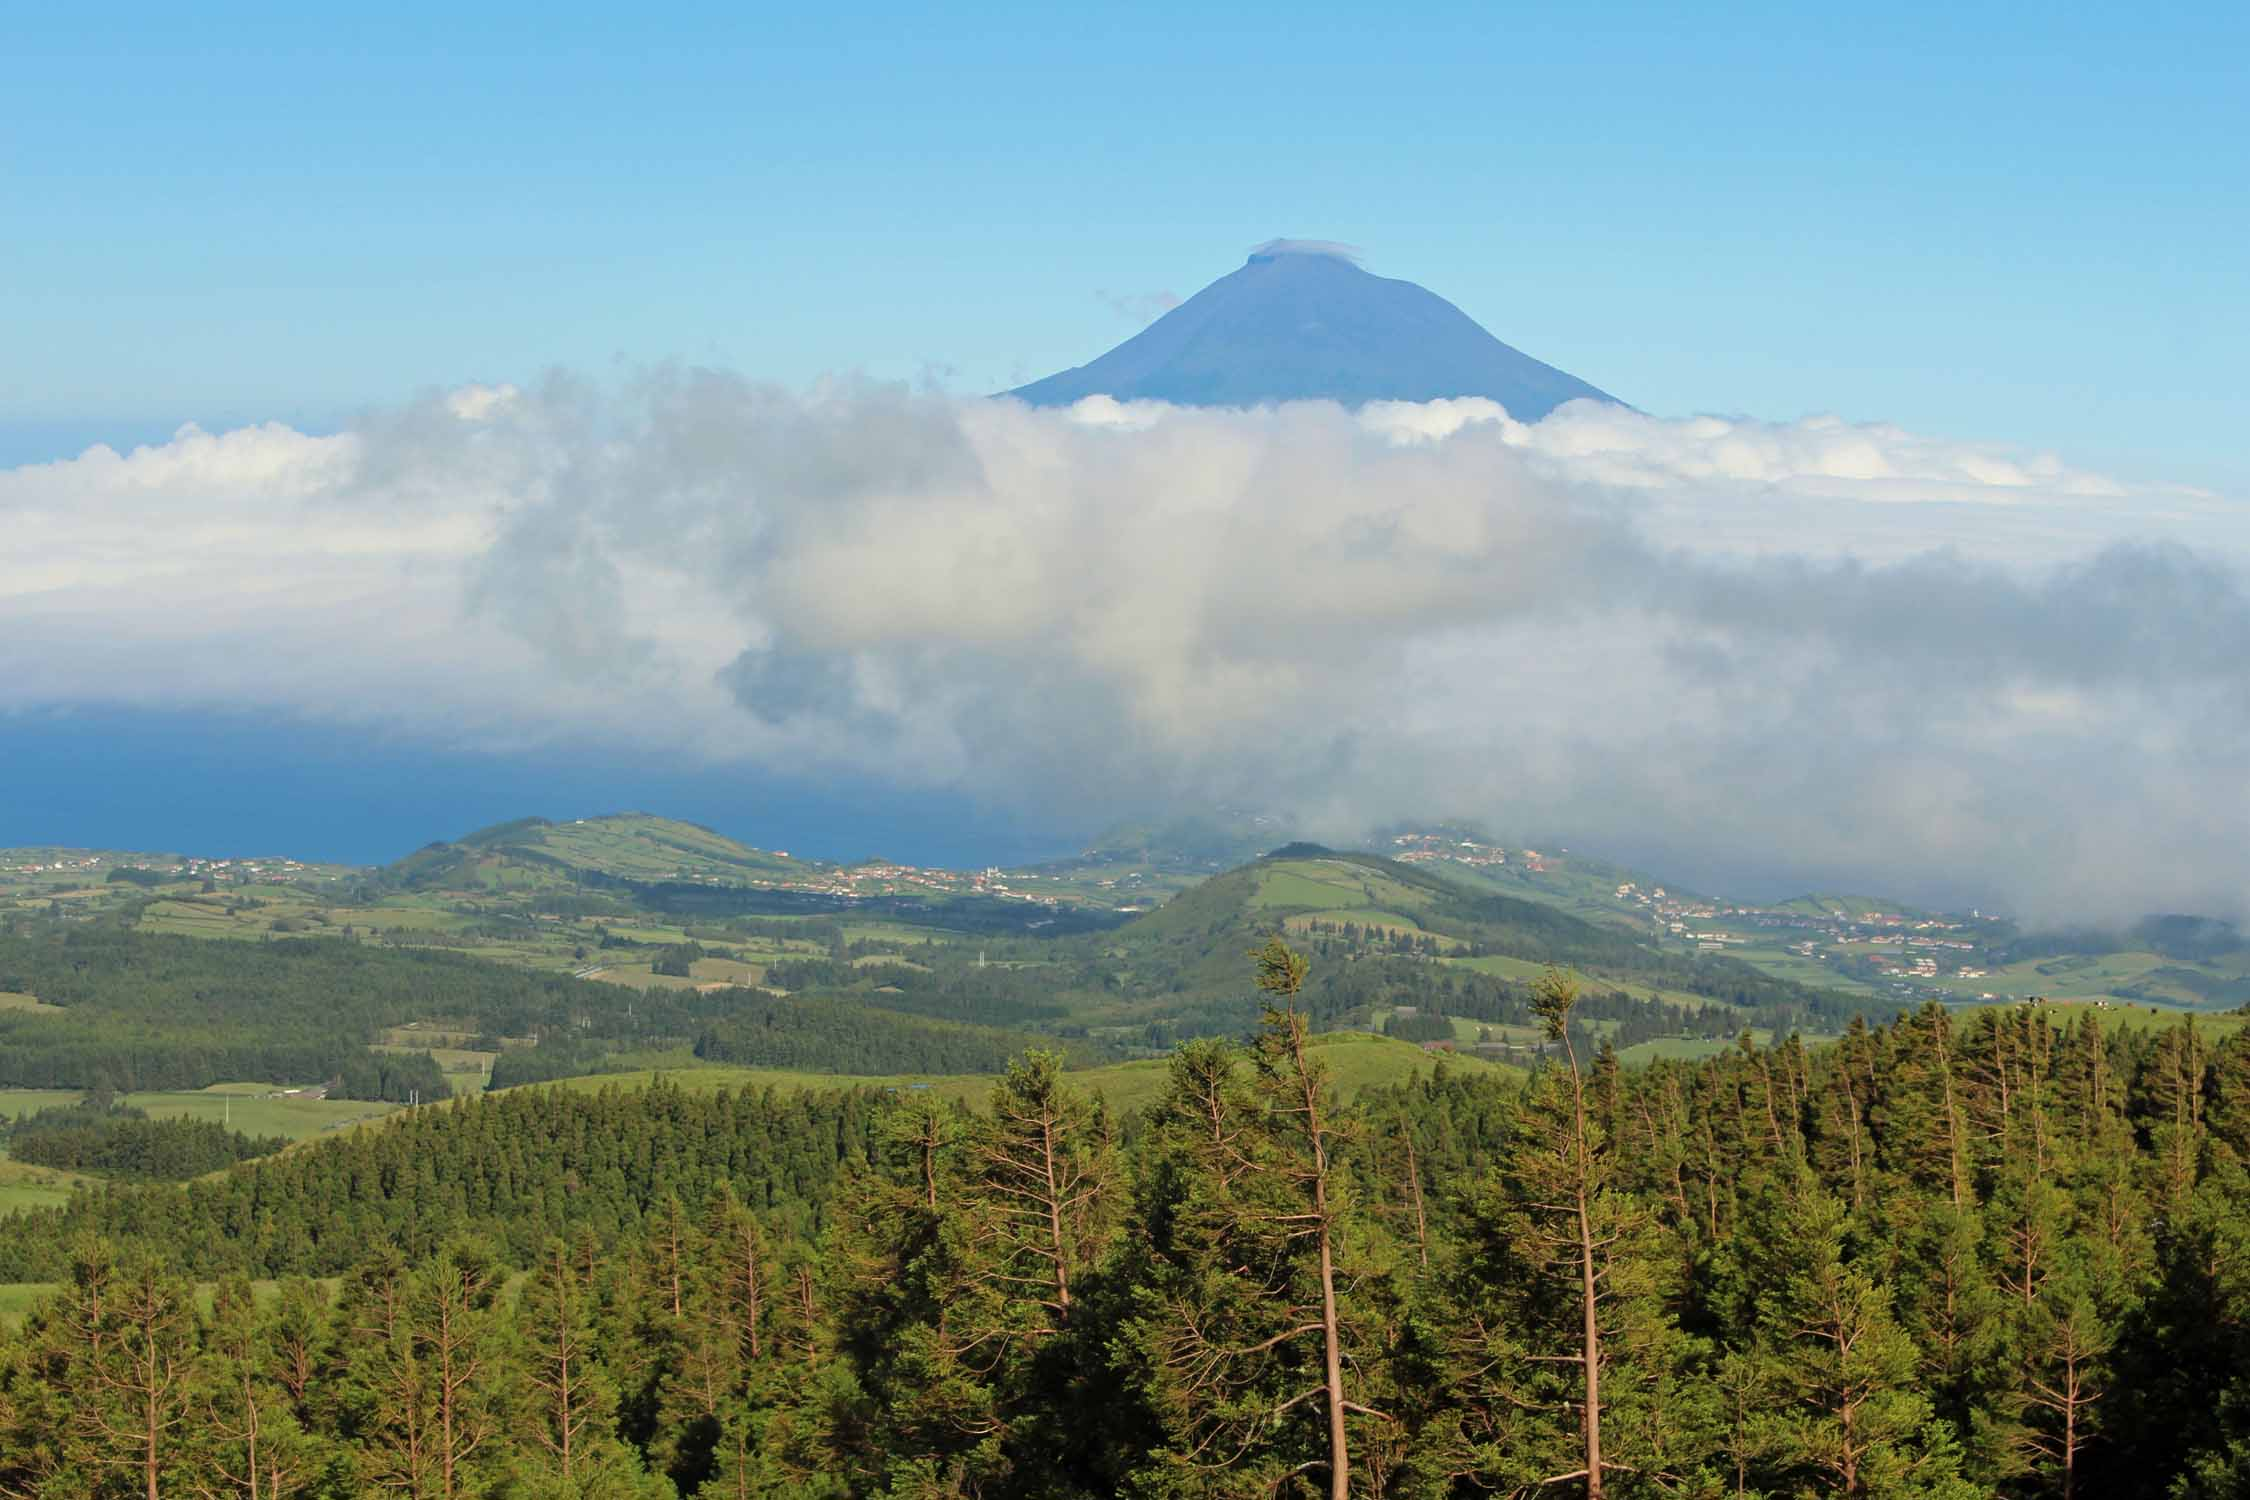 View of the volcano Pico, Faial Island, Azores